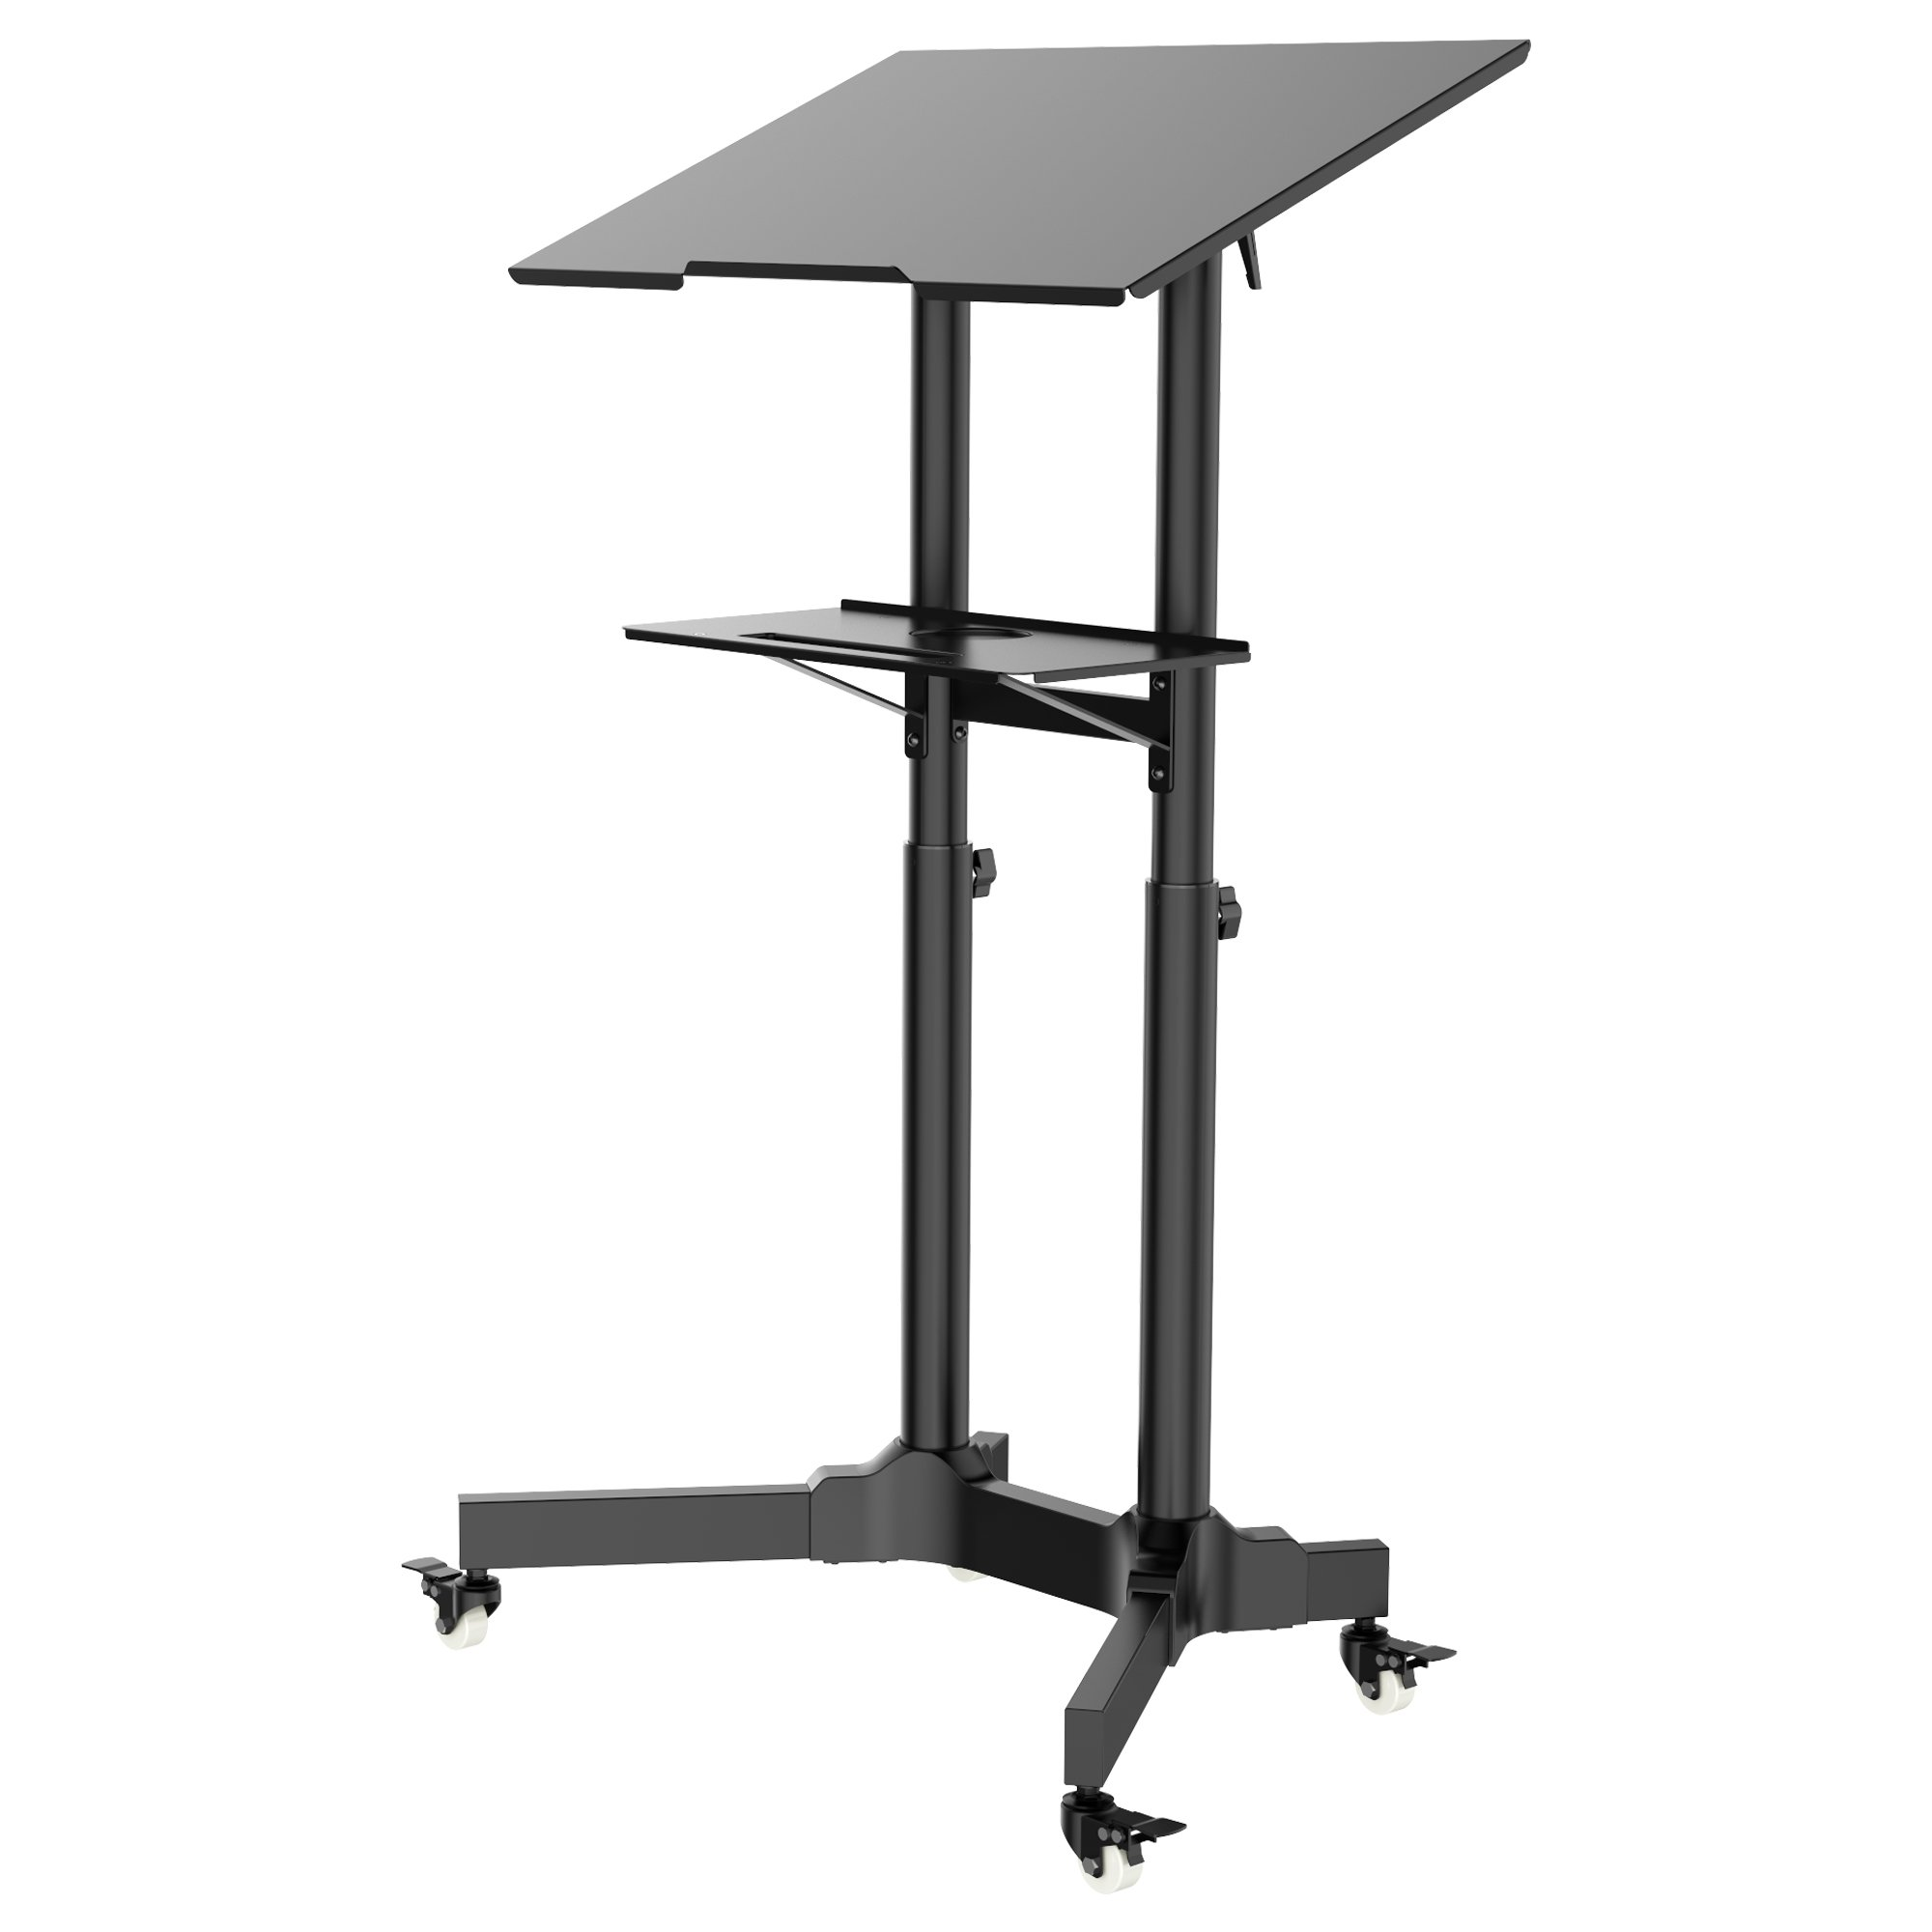 1home Mobile Stand Up Desk Ajustable Laptop Workstation Muti-Purpose Rolling Podium Lecternwith Wheels by 1home furnit